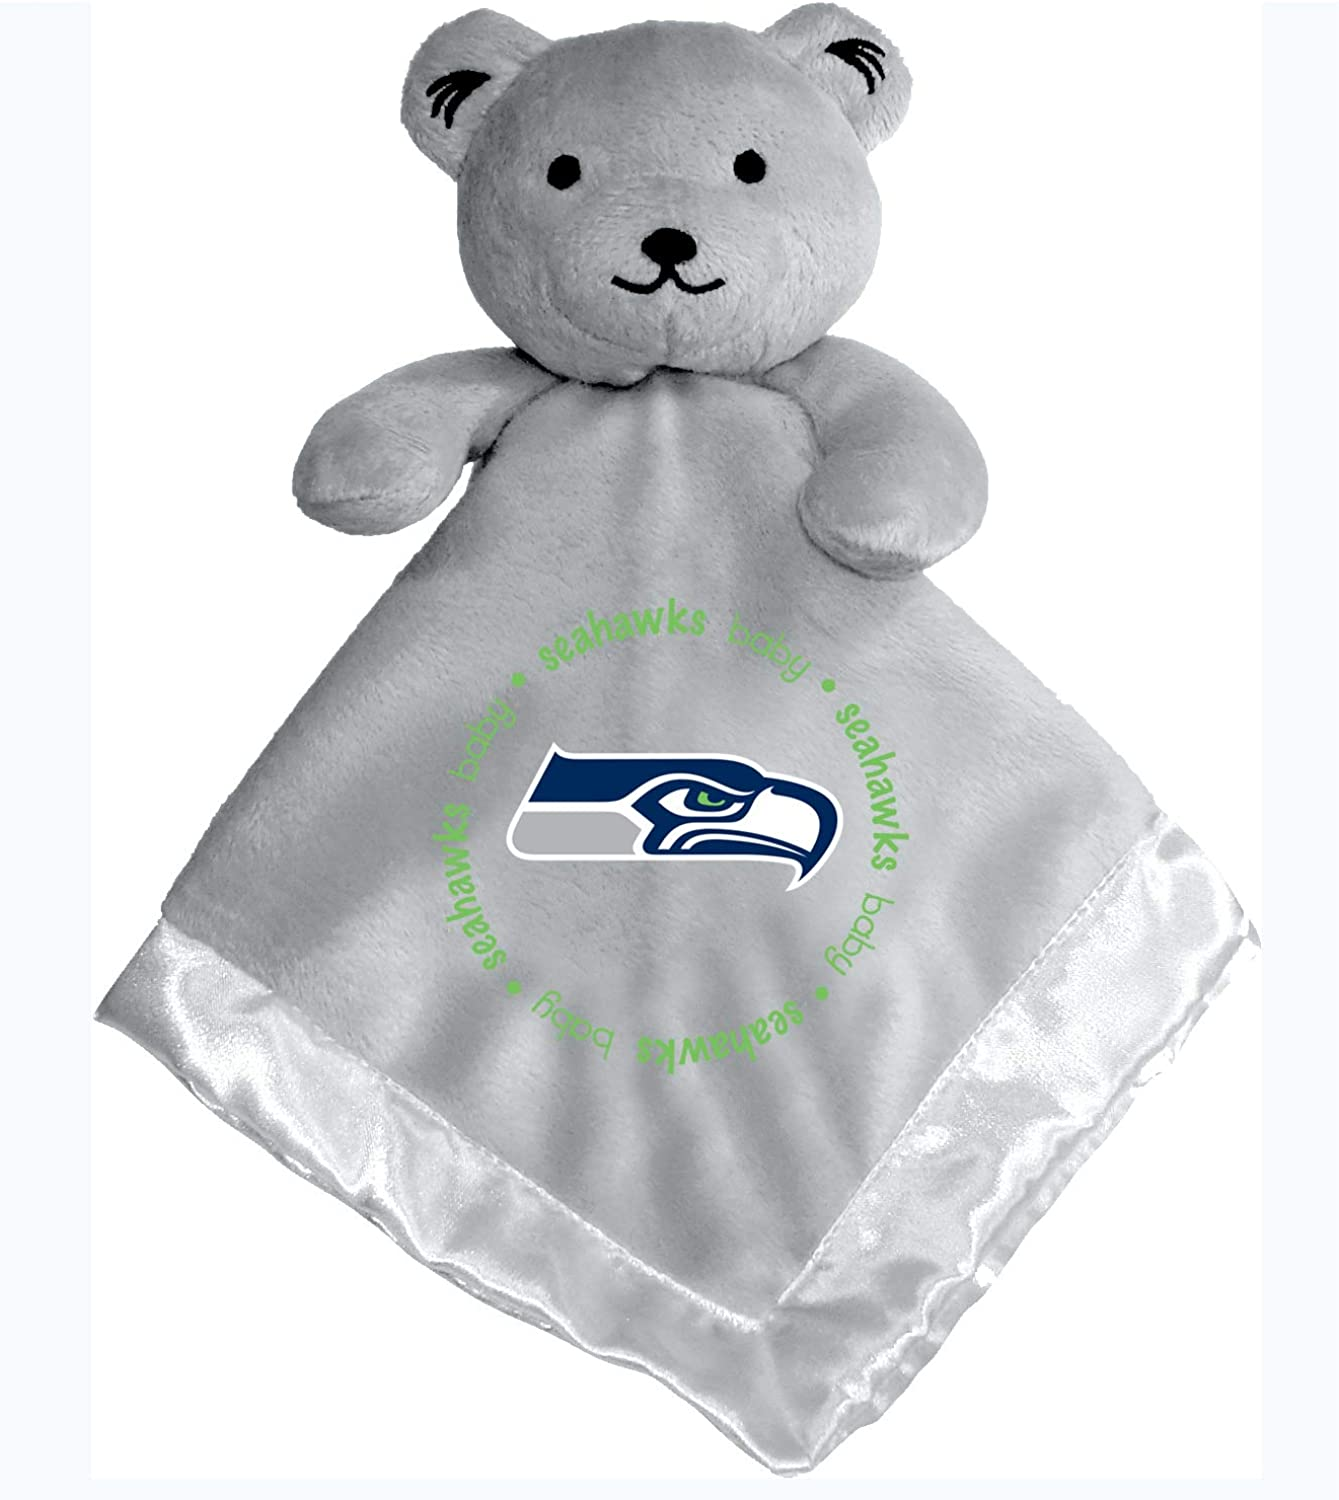 Baby Fanatic NFL Seattle Seahawks Infant and Toddler Sports Fan Apparel